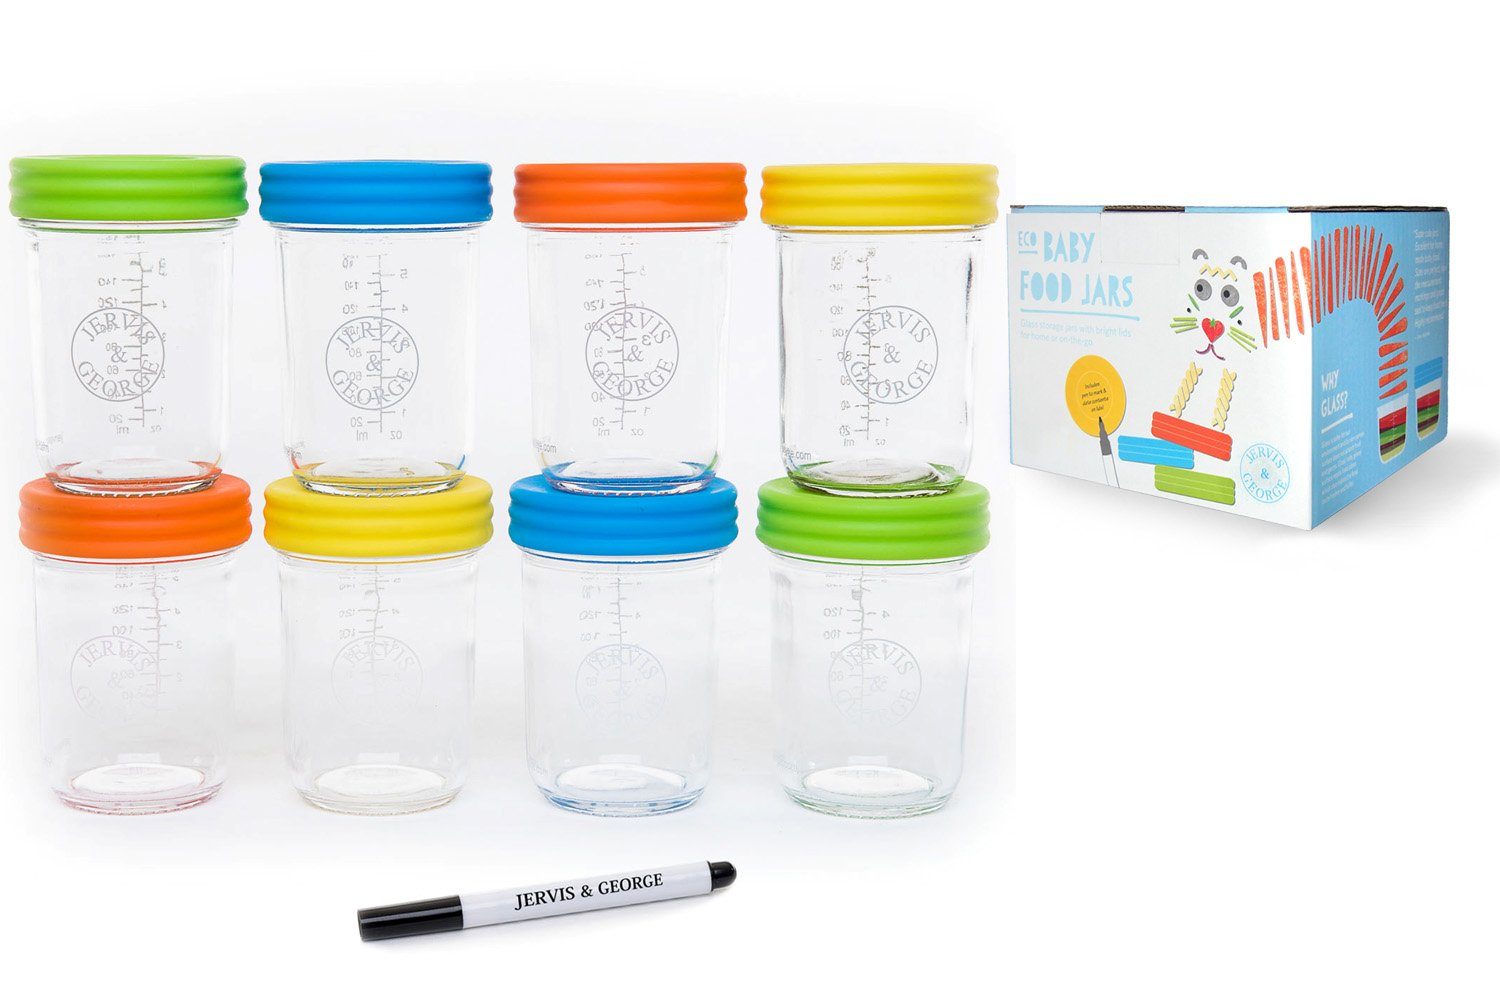 Glass Baby Food Storage Containers - Set contains 2 Small Reusable 8oz Jars with Airtight Lids - Safely Freeze your Homemade Baby Food Jervis & George